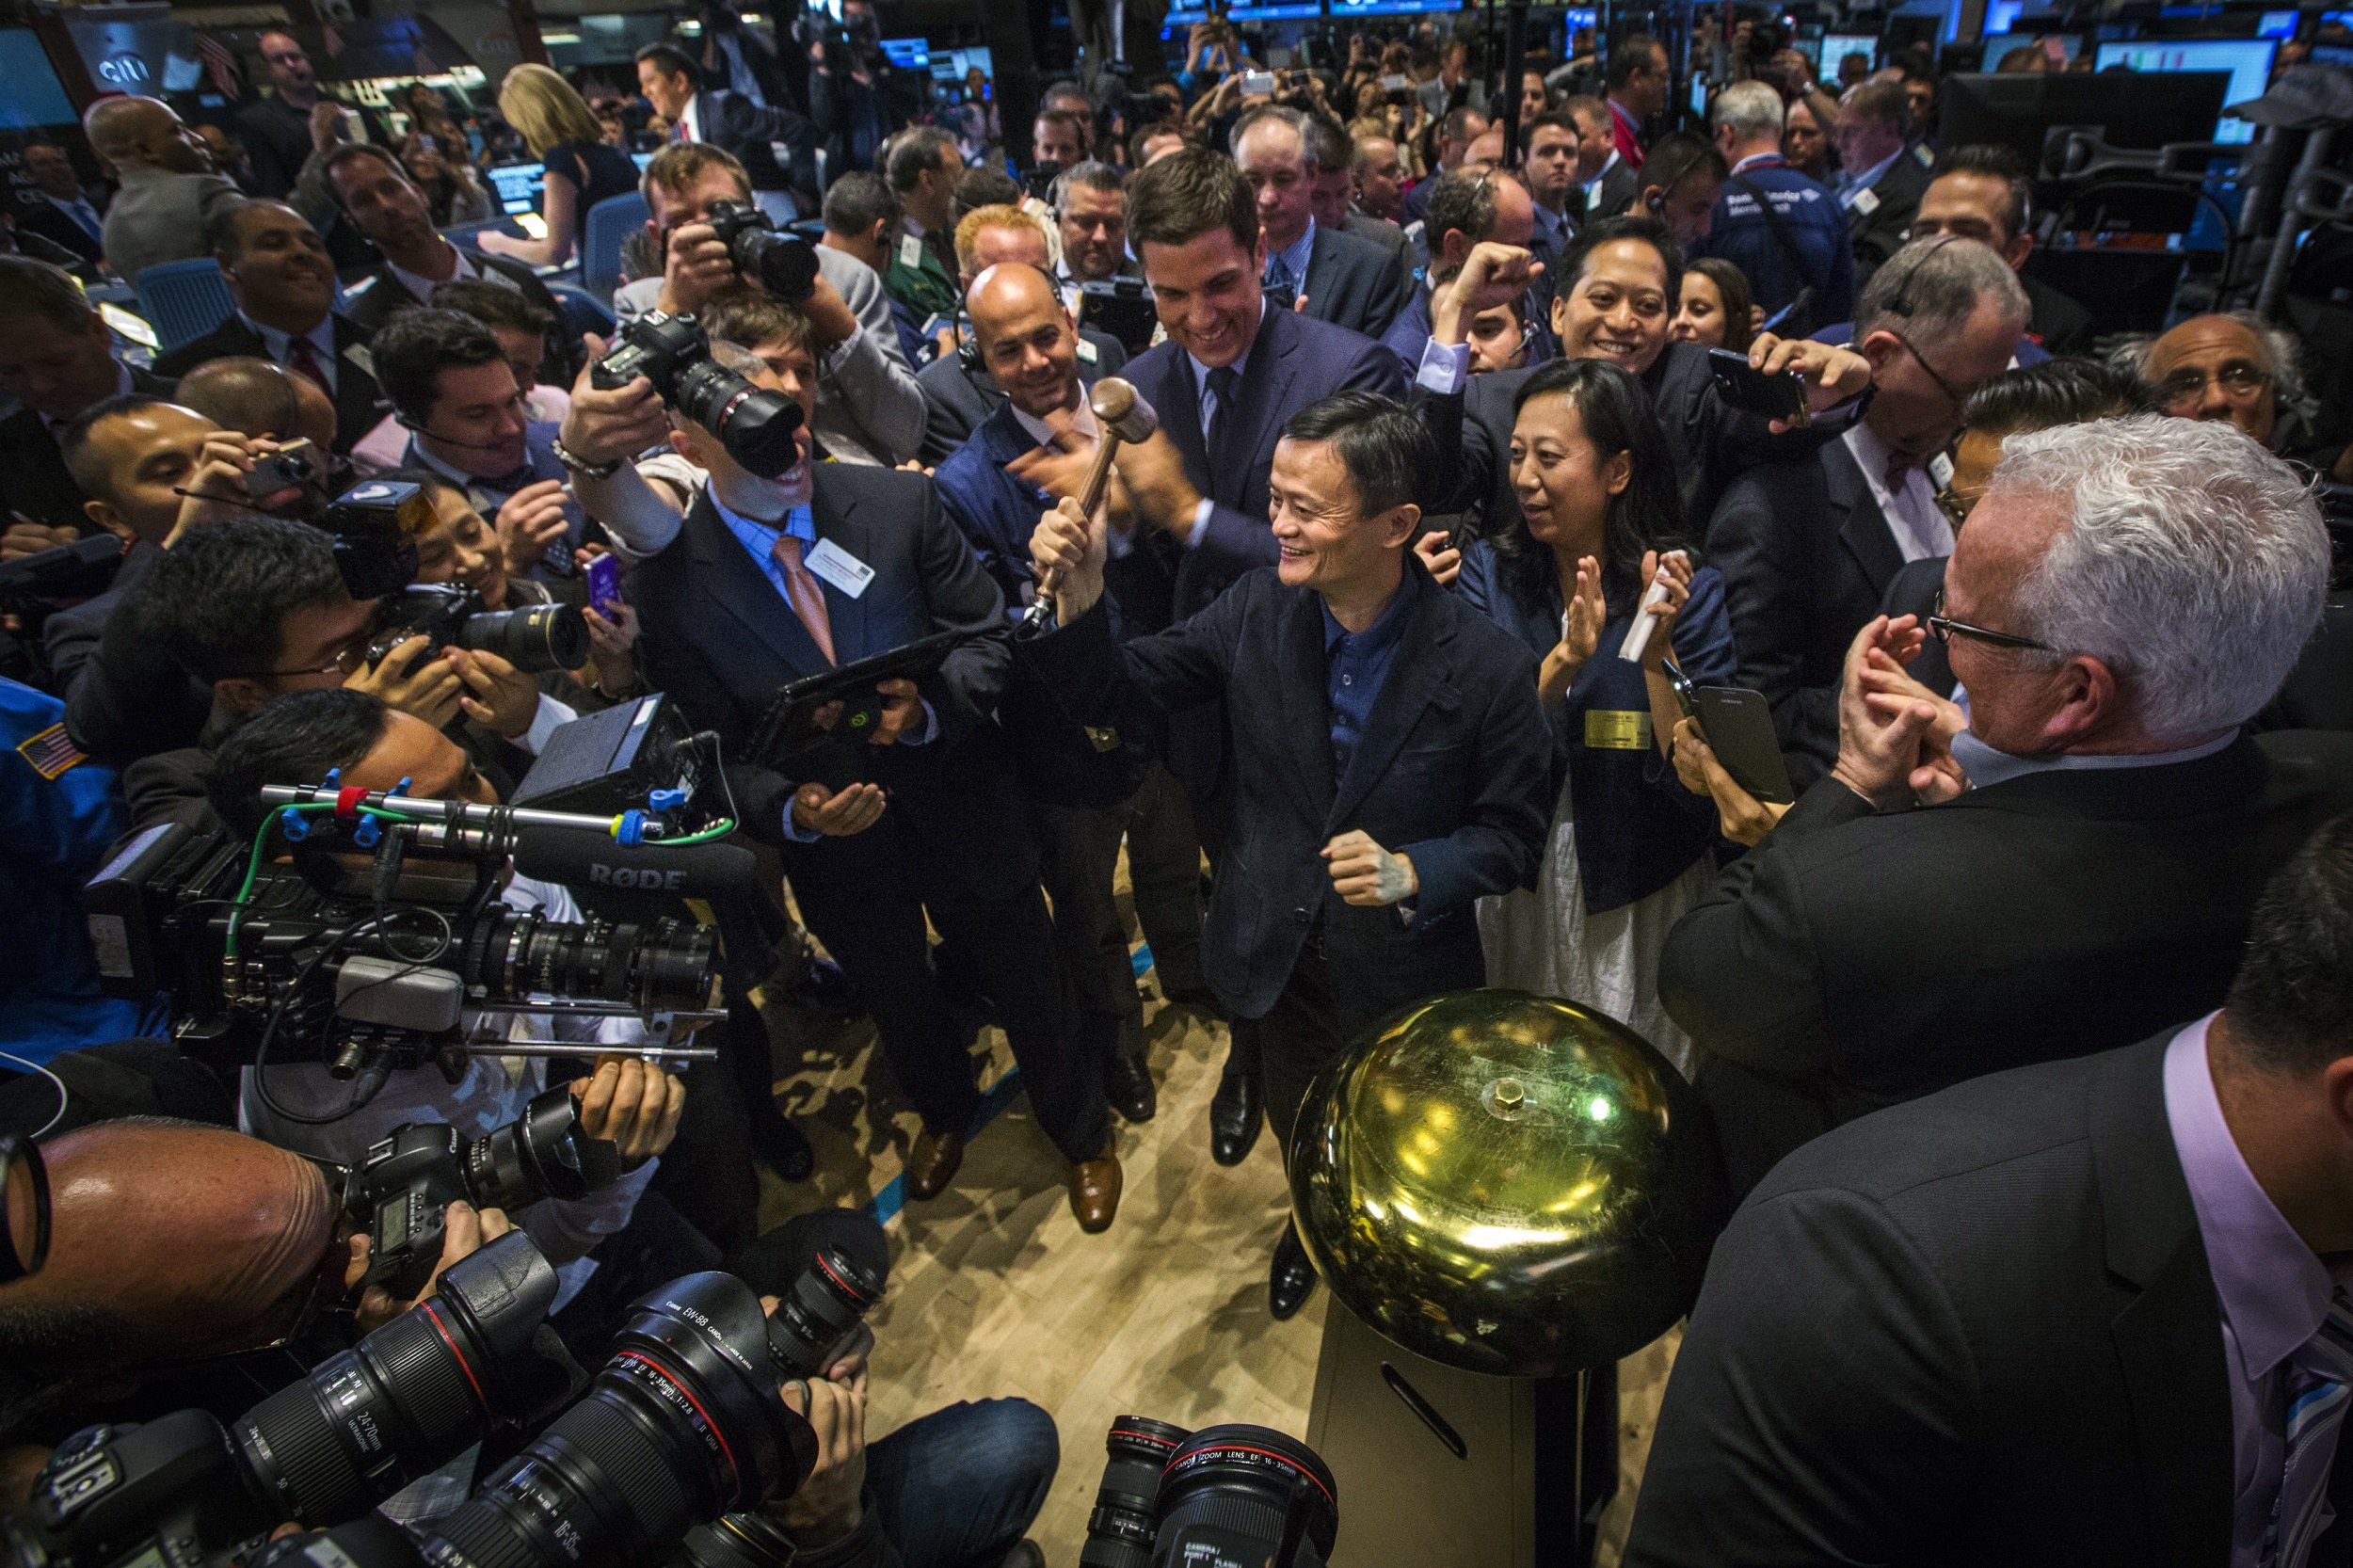 Alibaba Group Holding Ltd. founder Jack Ma